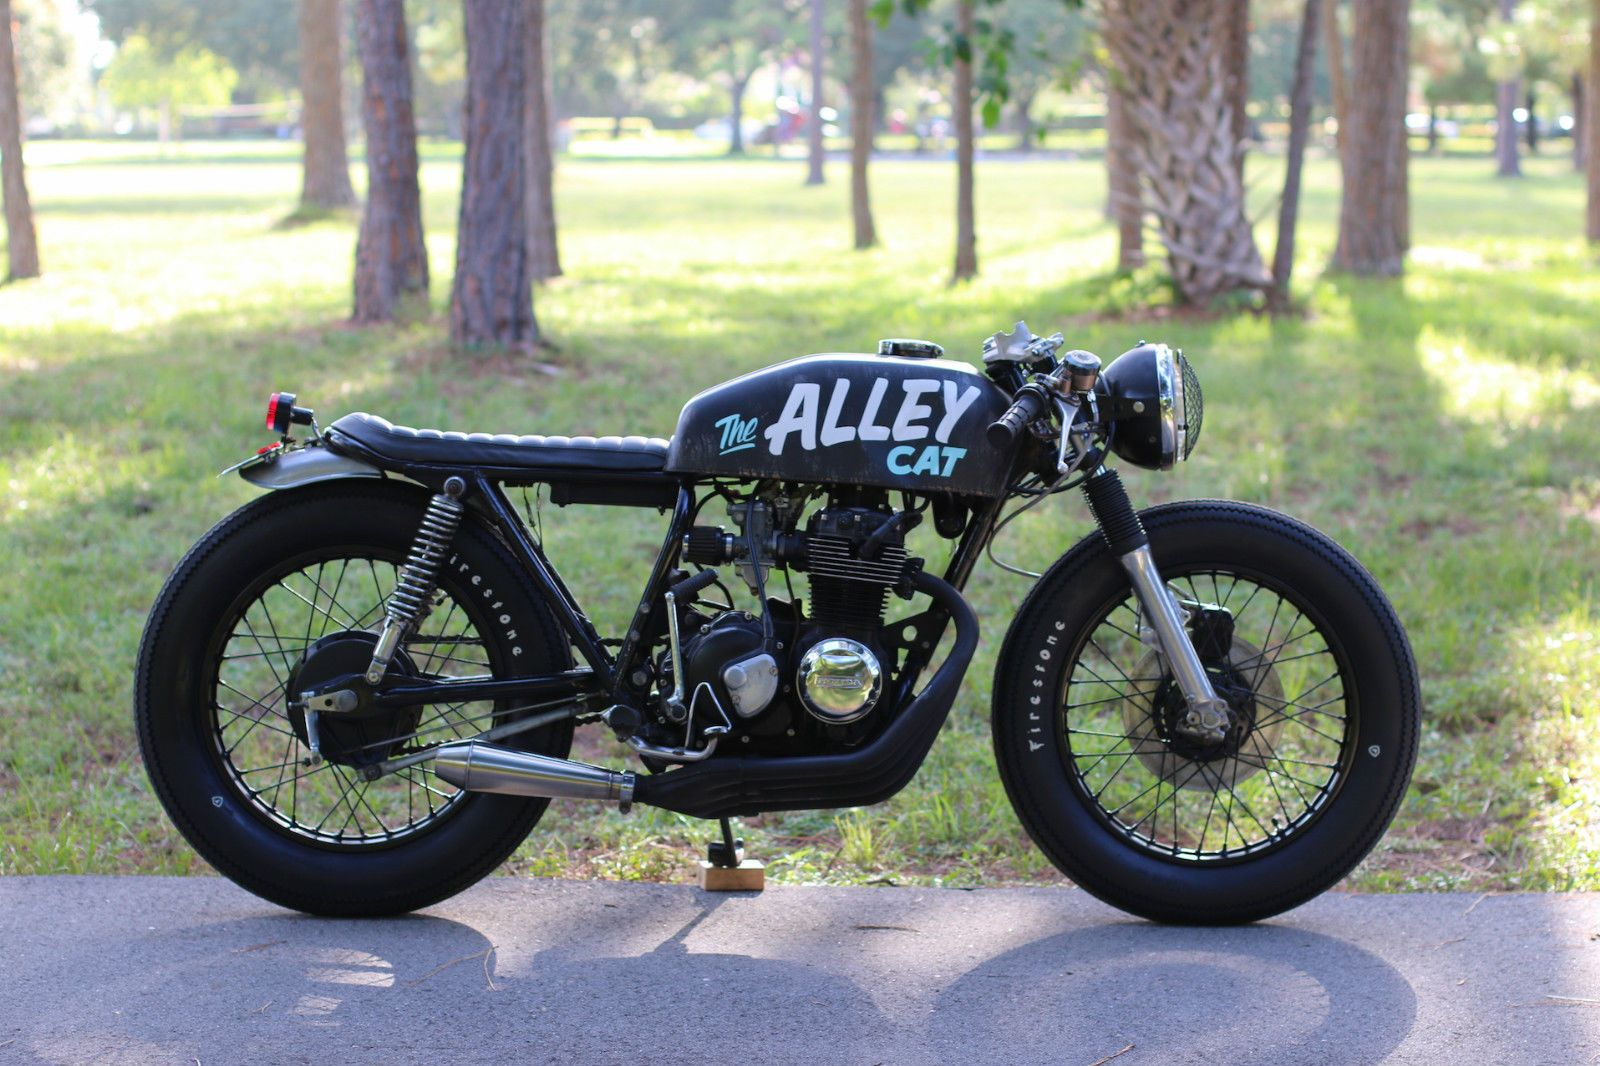 "click here to bid on ebay 1977 honda cb400f cafe racer ""alley cat"